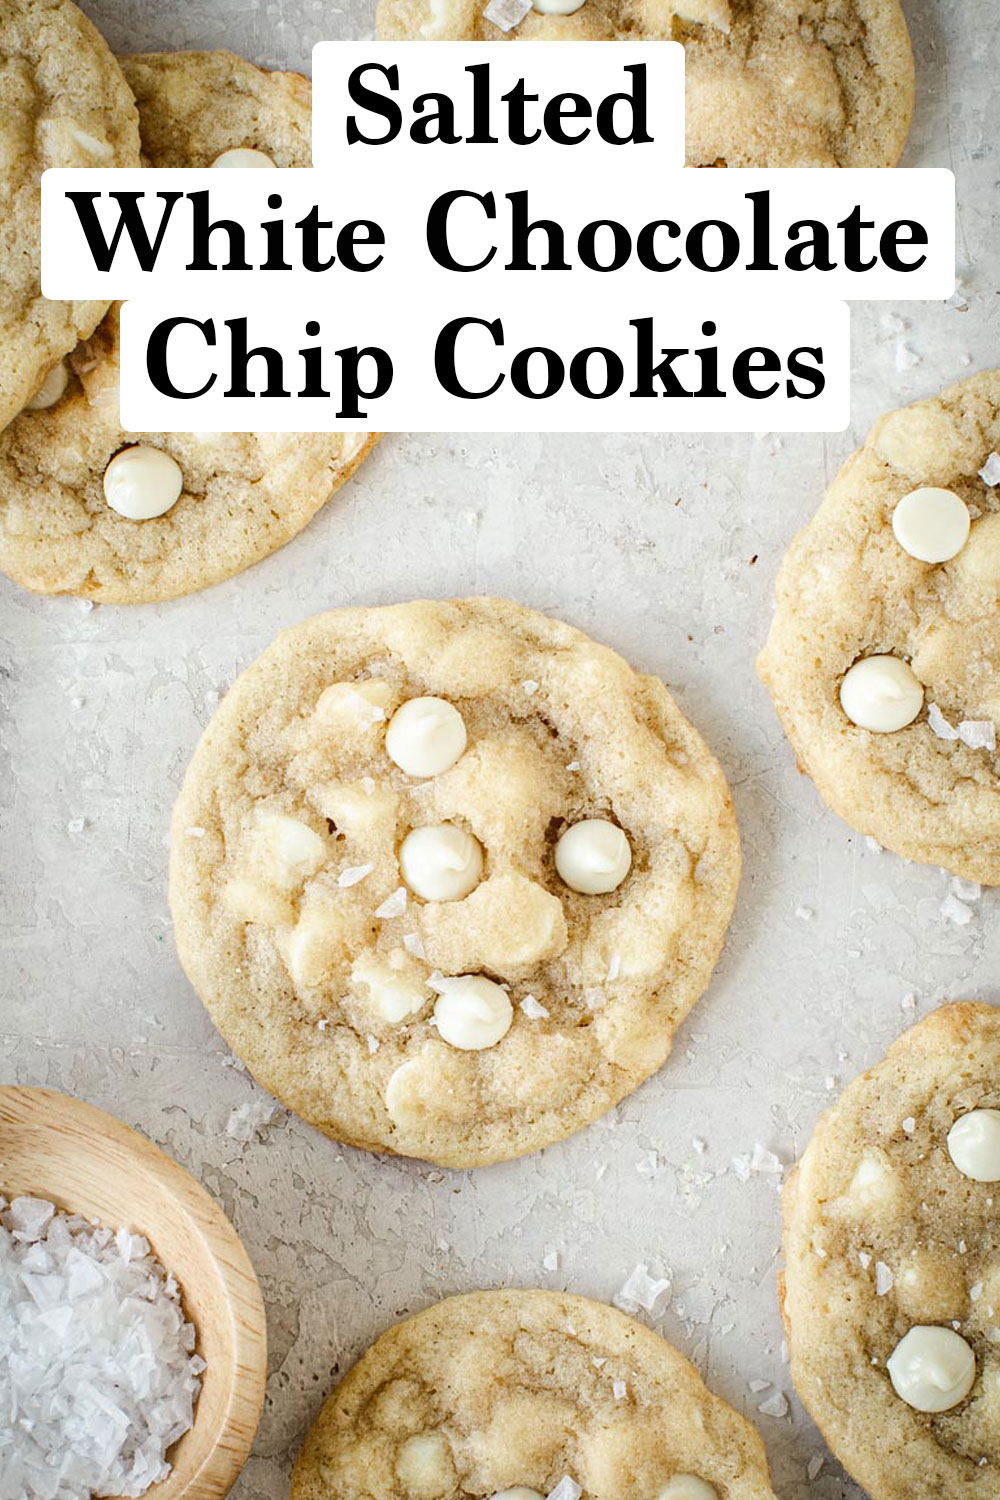 Salted white chocolate chip cookies spread out on white board.